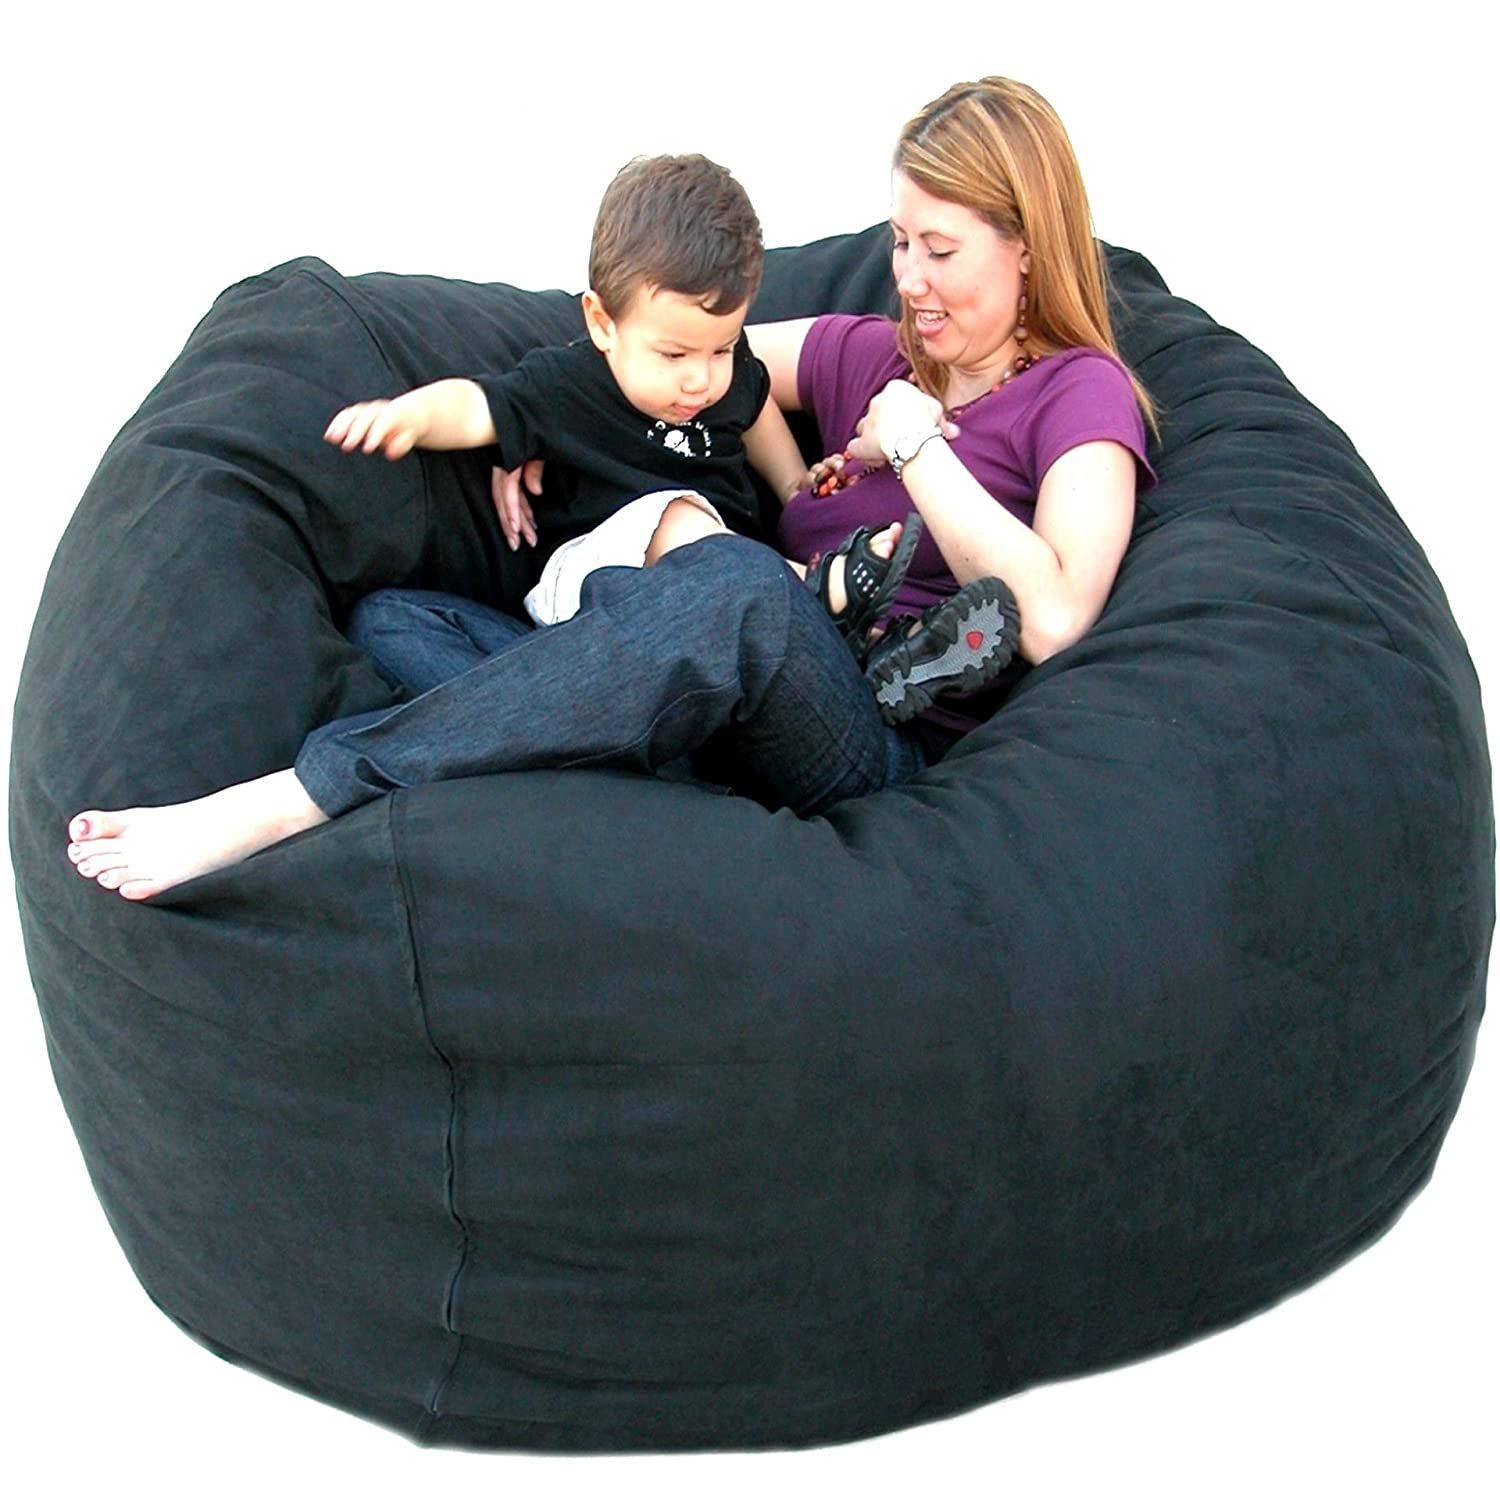 Amazon.com: Cozy Sack 5 Feet Bean Bag Chair, Large, Black: Kitchen U0026 Dining